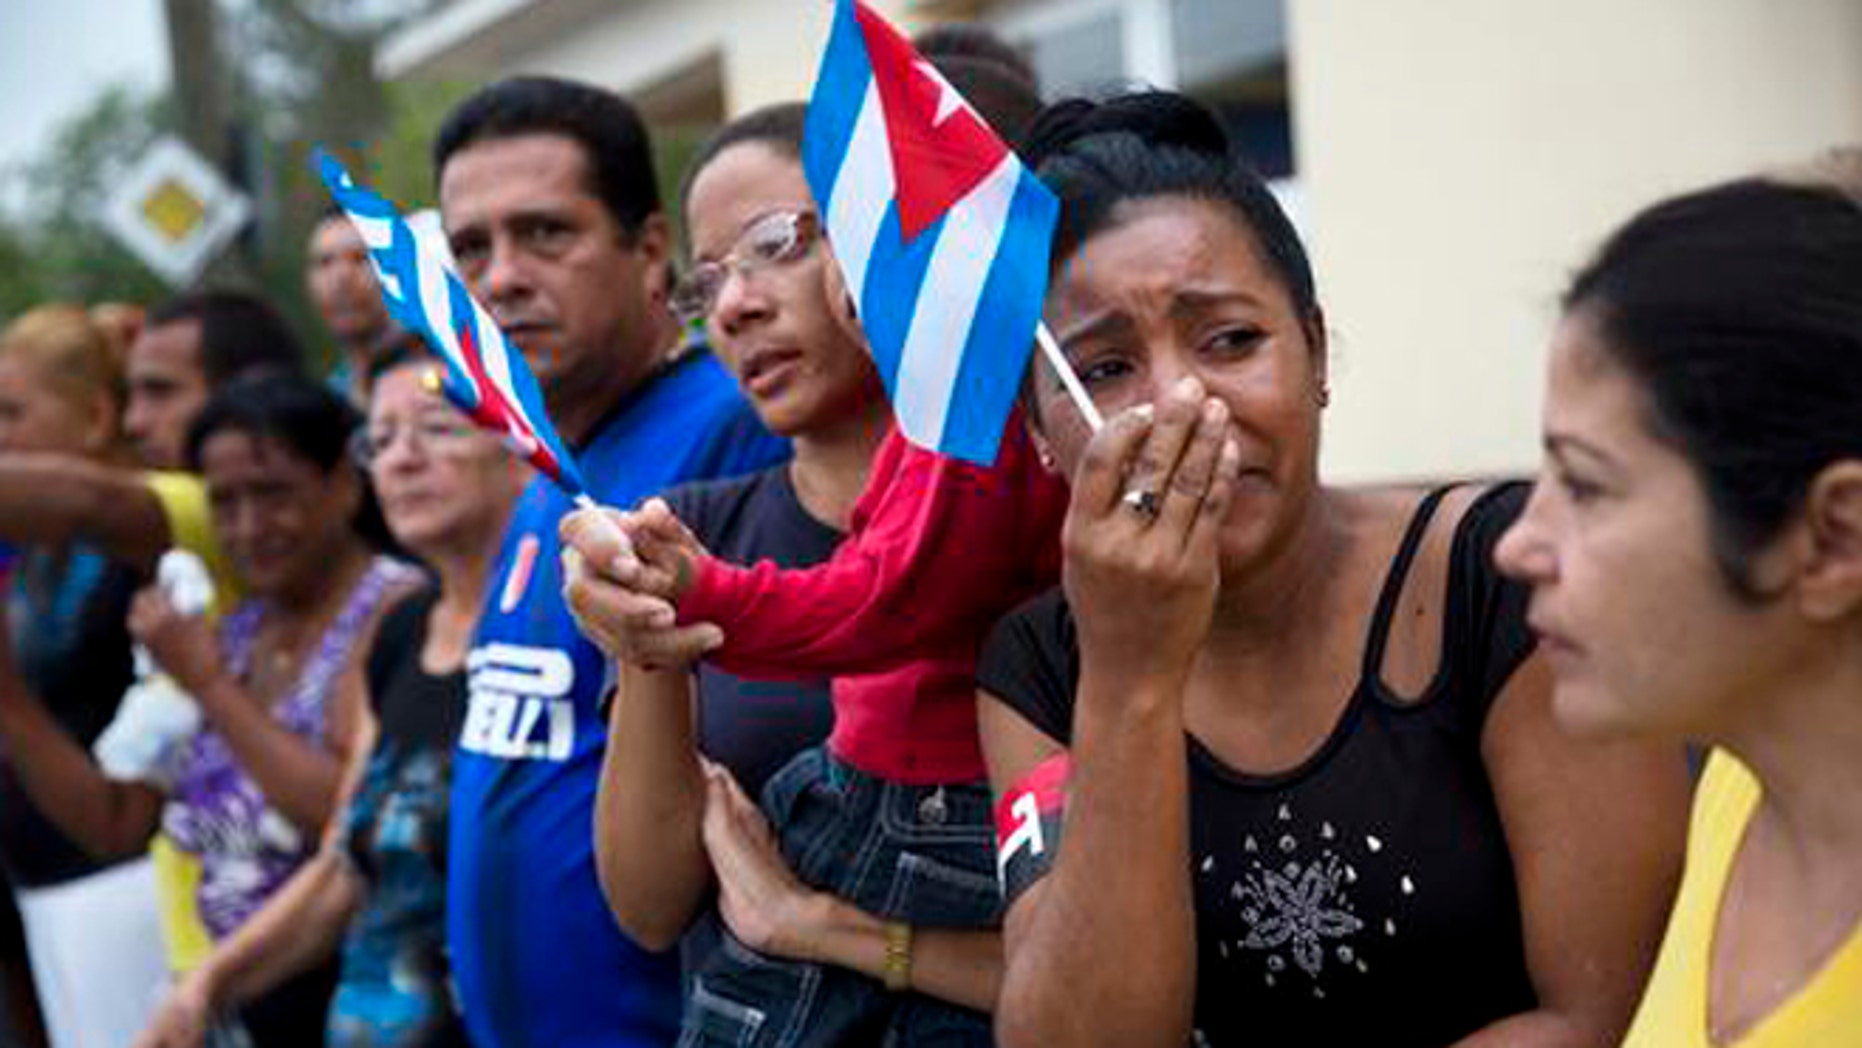 A woman weeps after watching the ashes of Cuban leader Fidel Castro along the main road in Baire, eastern Cuba, Saturday, Dec. 3, 2016. The convoy is on the last stage of a four-day journey across Cuba through small towns and cities where his rebel army fought its way to power nearly 60 years ago, to the eastern city of Santiago, where his remains will be interred on Sunday. (AP Photo/Rodrigo Abd)